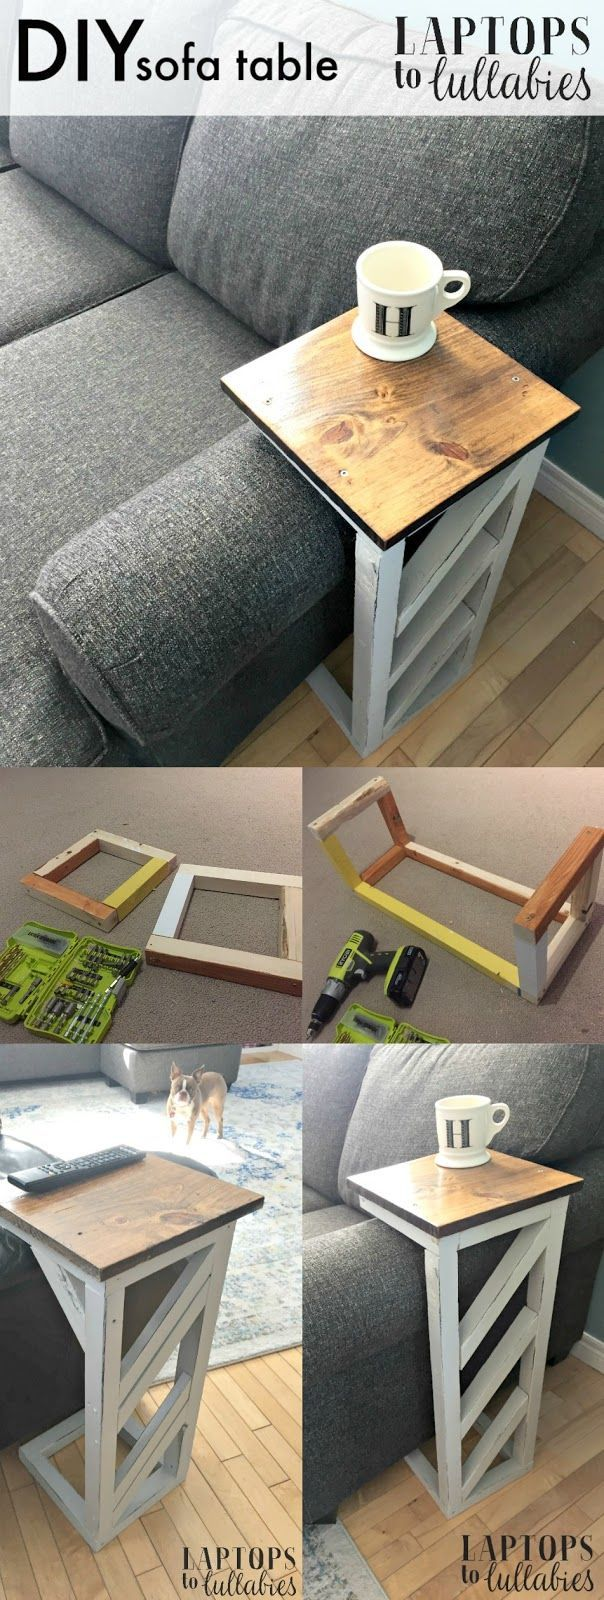 How to make a sofa table from 1 x 6 lumber - Laptops To Lullabies Easy Diy Sofa Tables